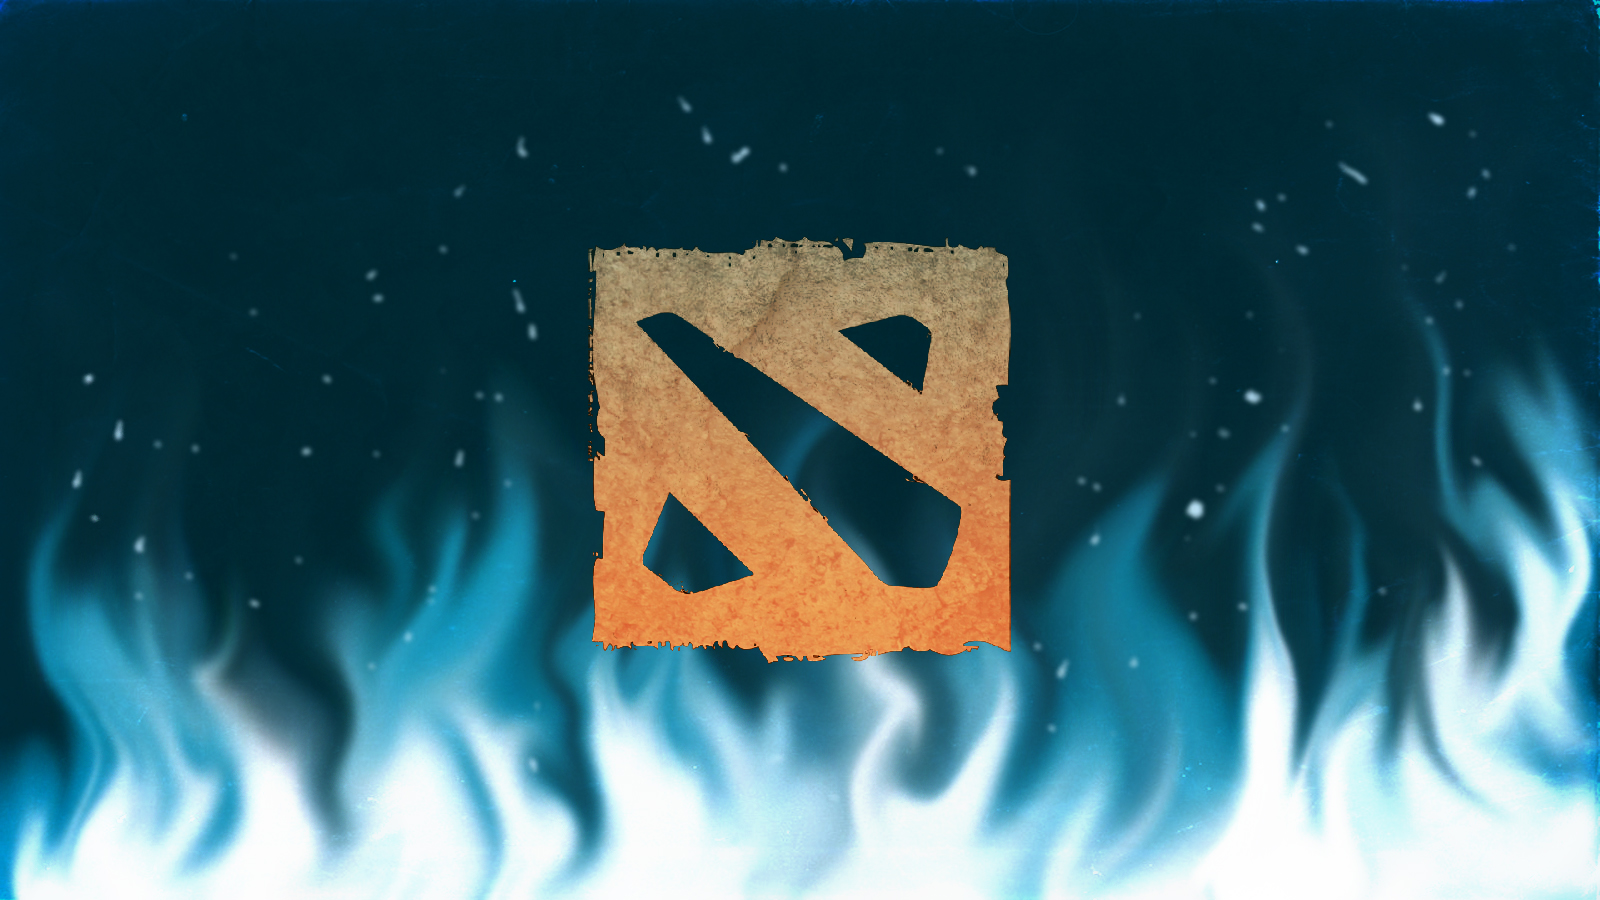 Dota2 Logo With Blue Flames By DracoPheonus